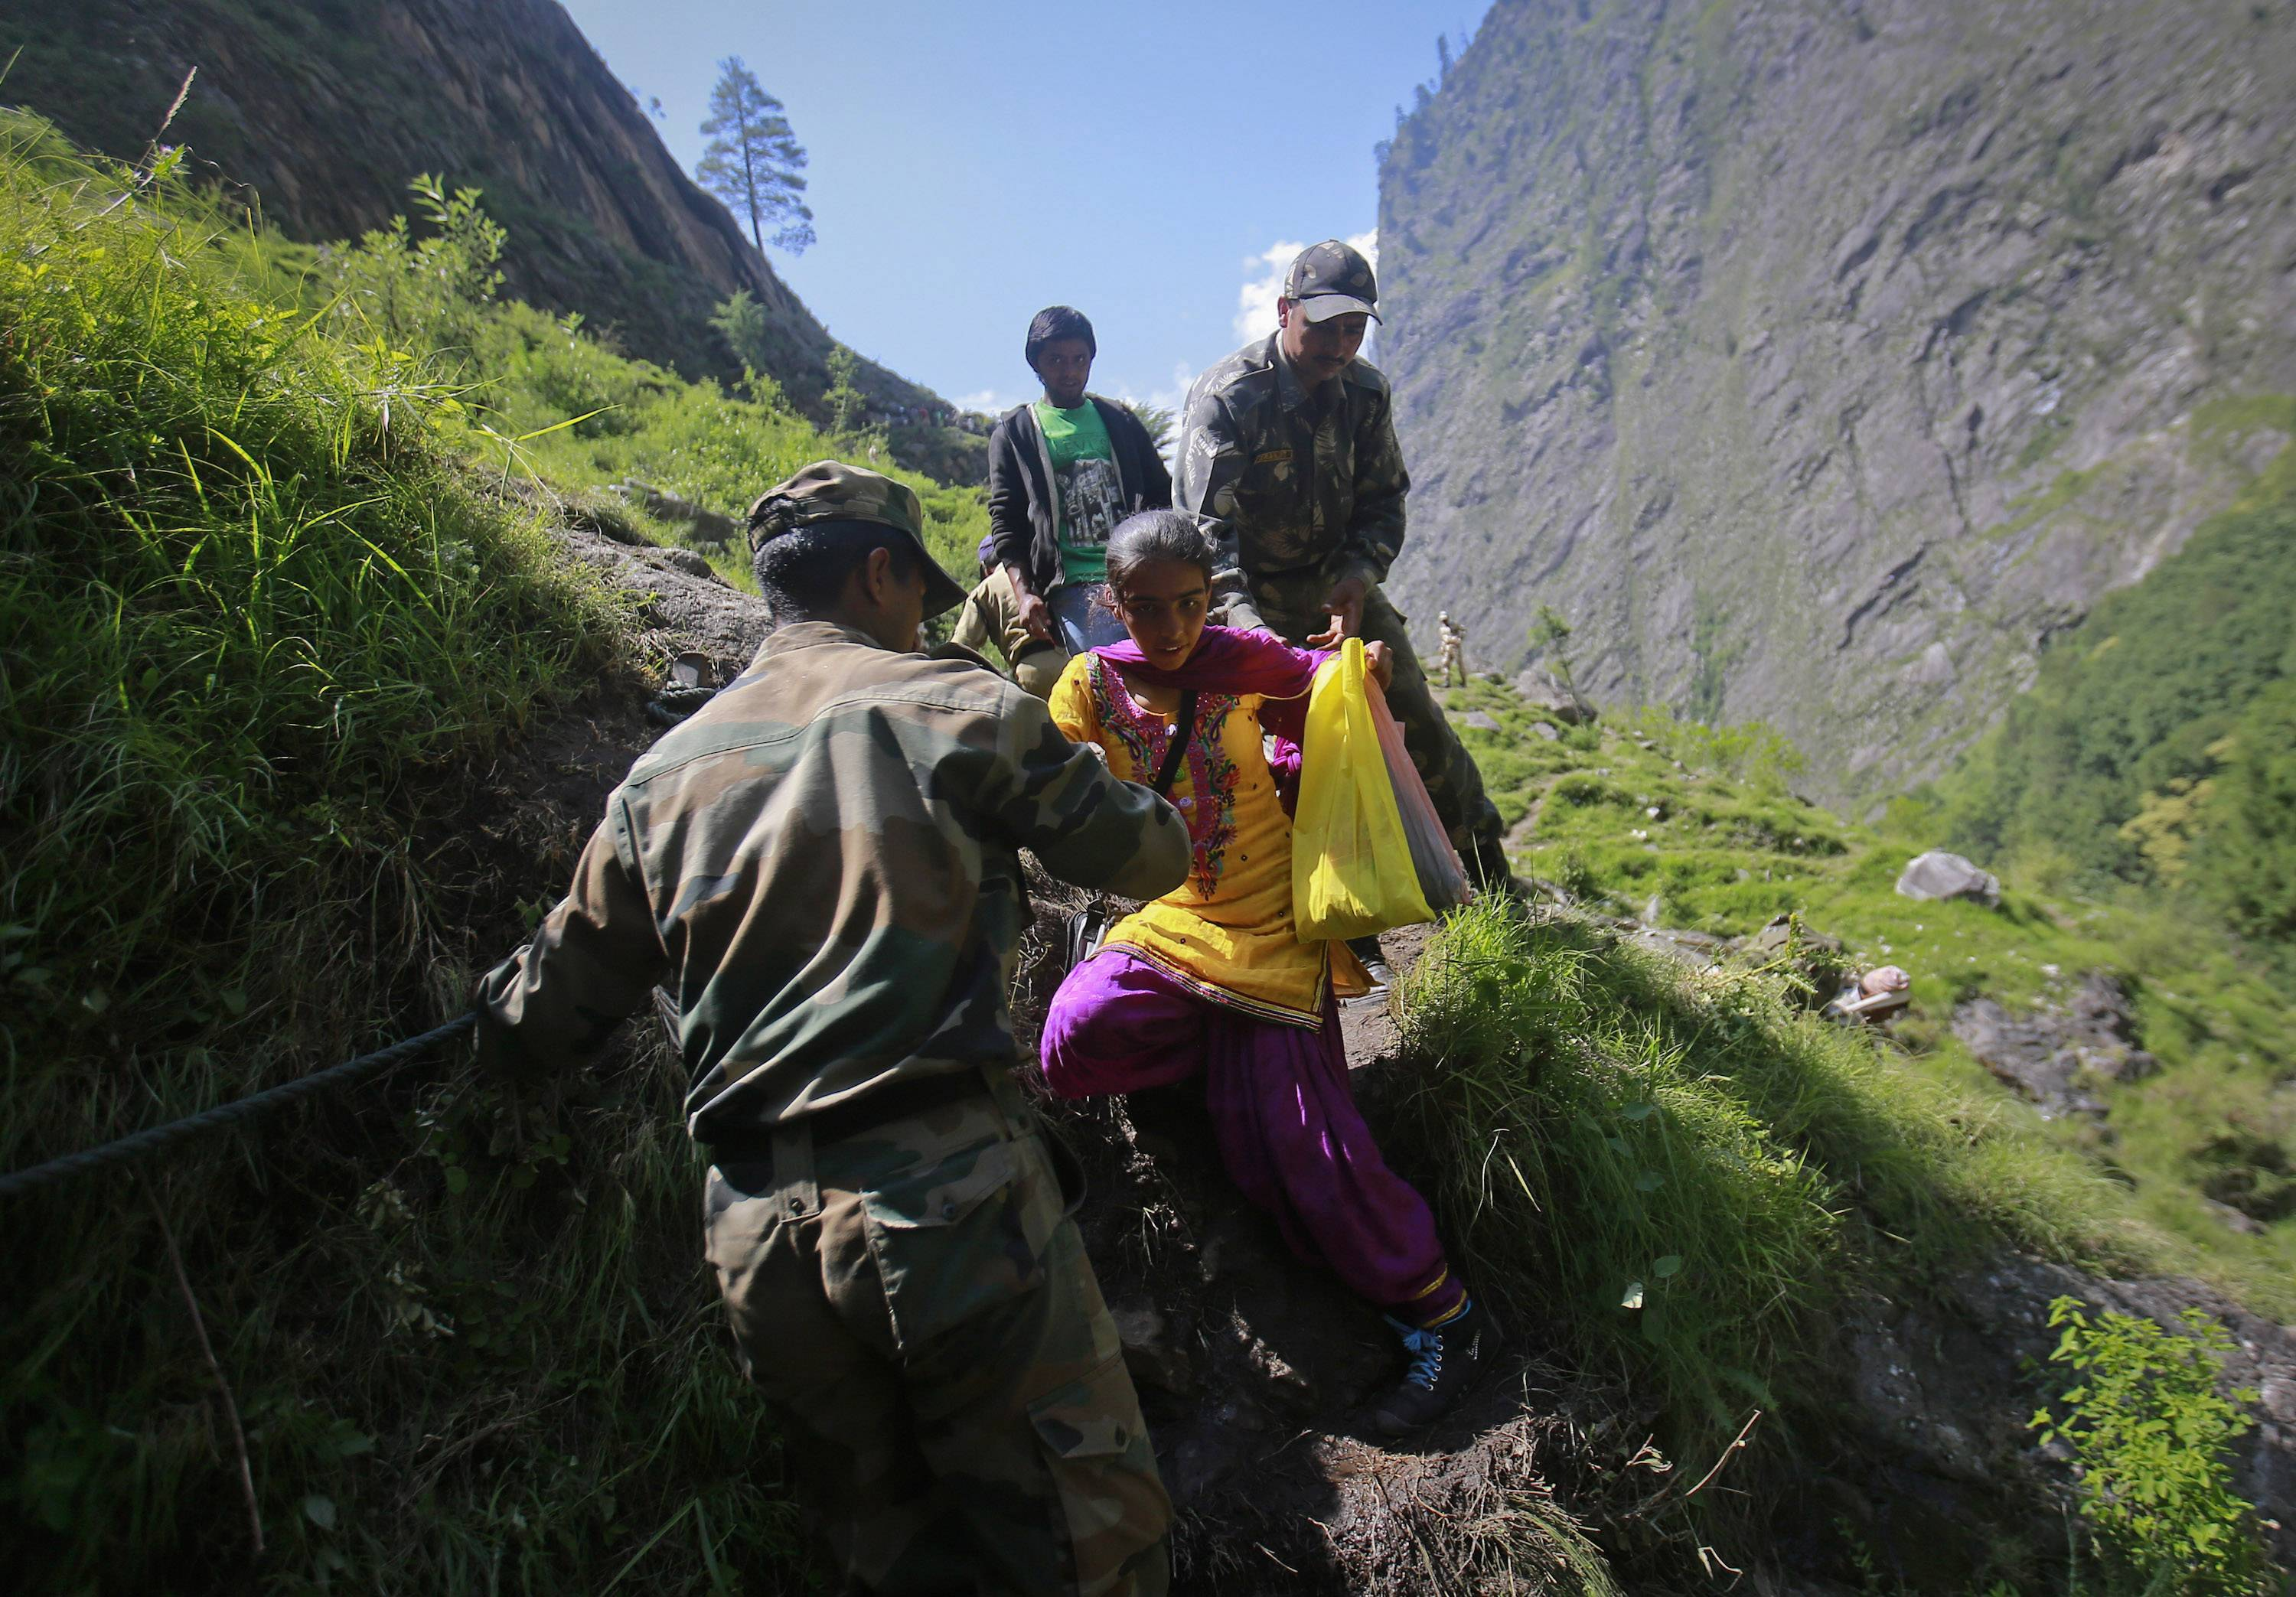 A woman is helped by soldiers to climb down a hill during a rescue operation at Govindghat in the Himalayan state of Uttarakhand June 21, 2013.